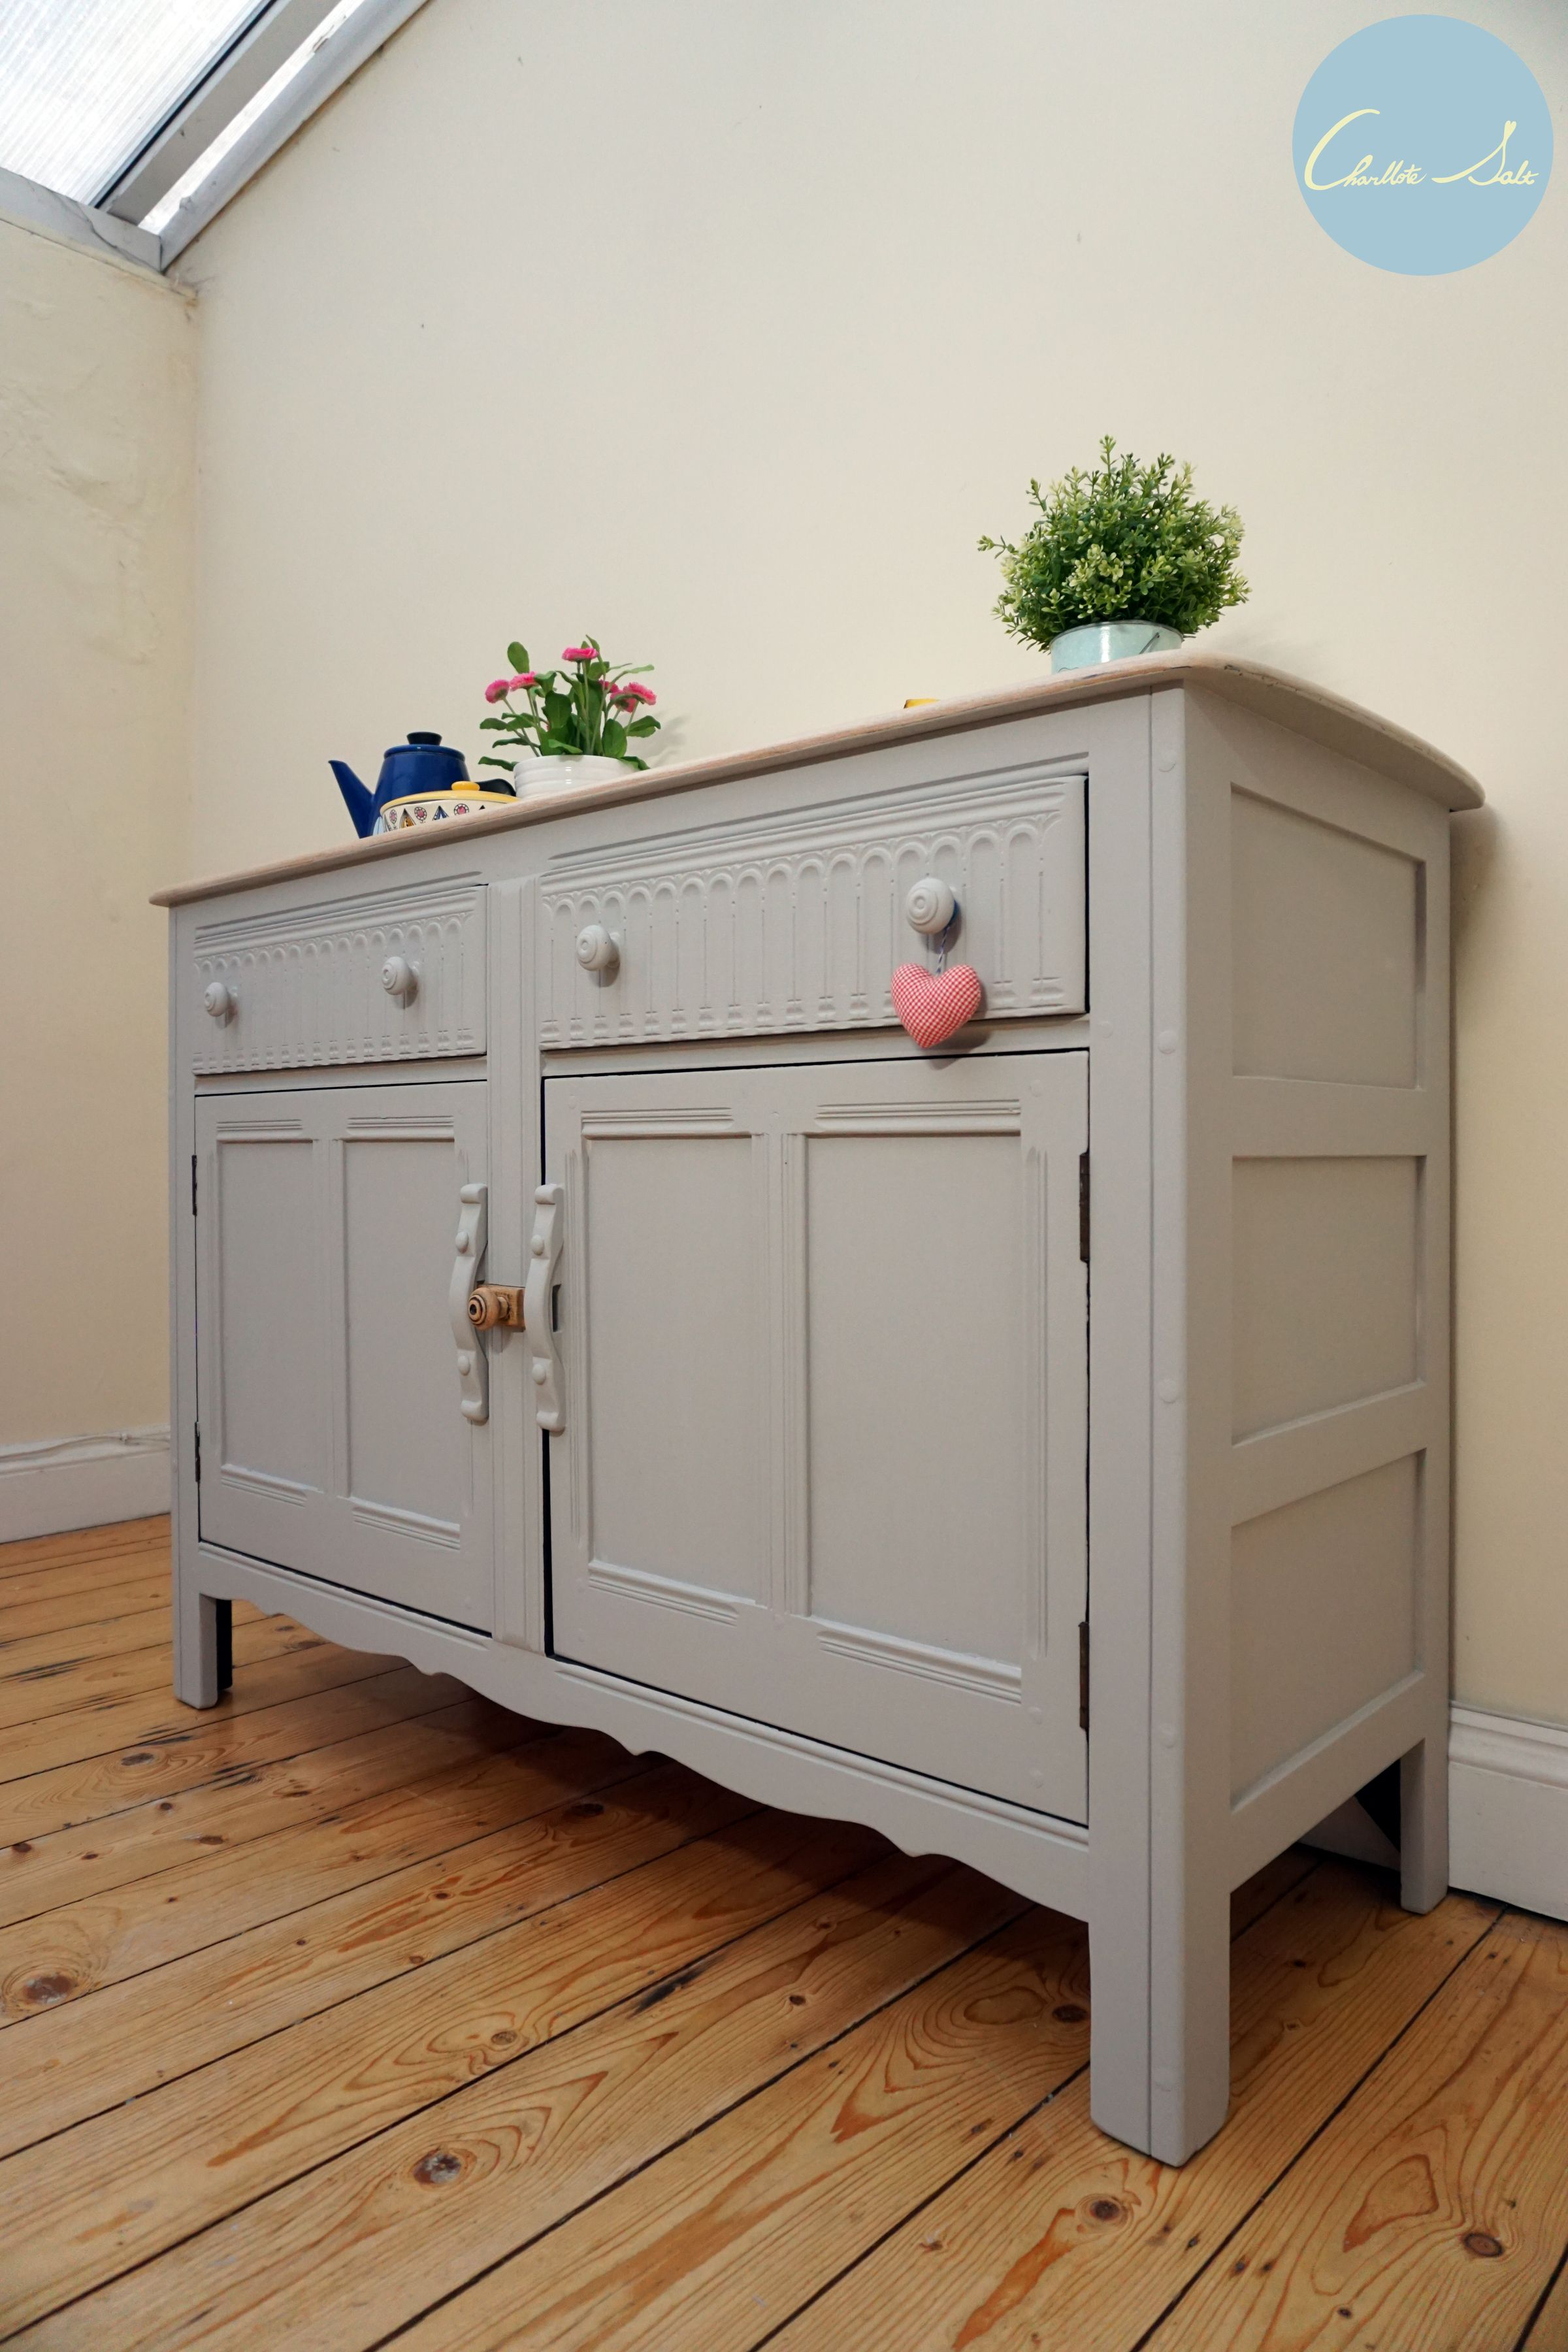 Ercol Sideboard Is Painted In Laura Ashley Dark Dove Grey Regarding White And Grey Sideboards (Photo 18 of 30)